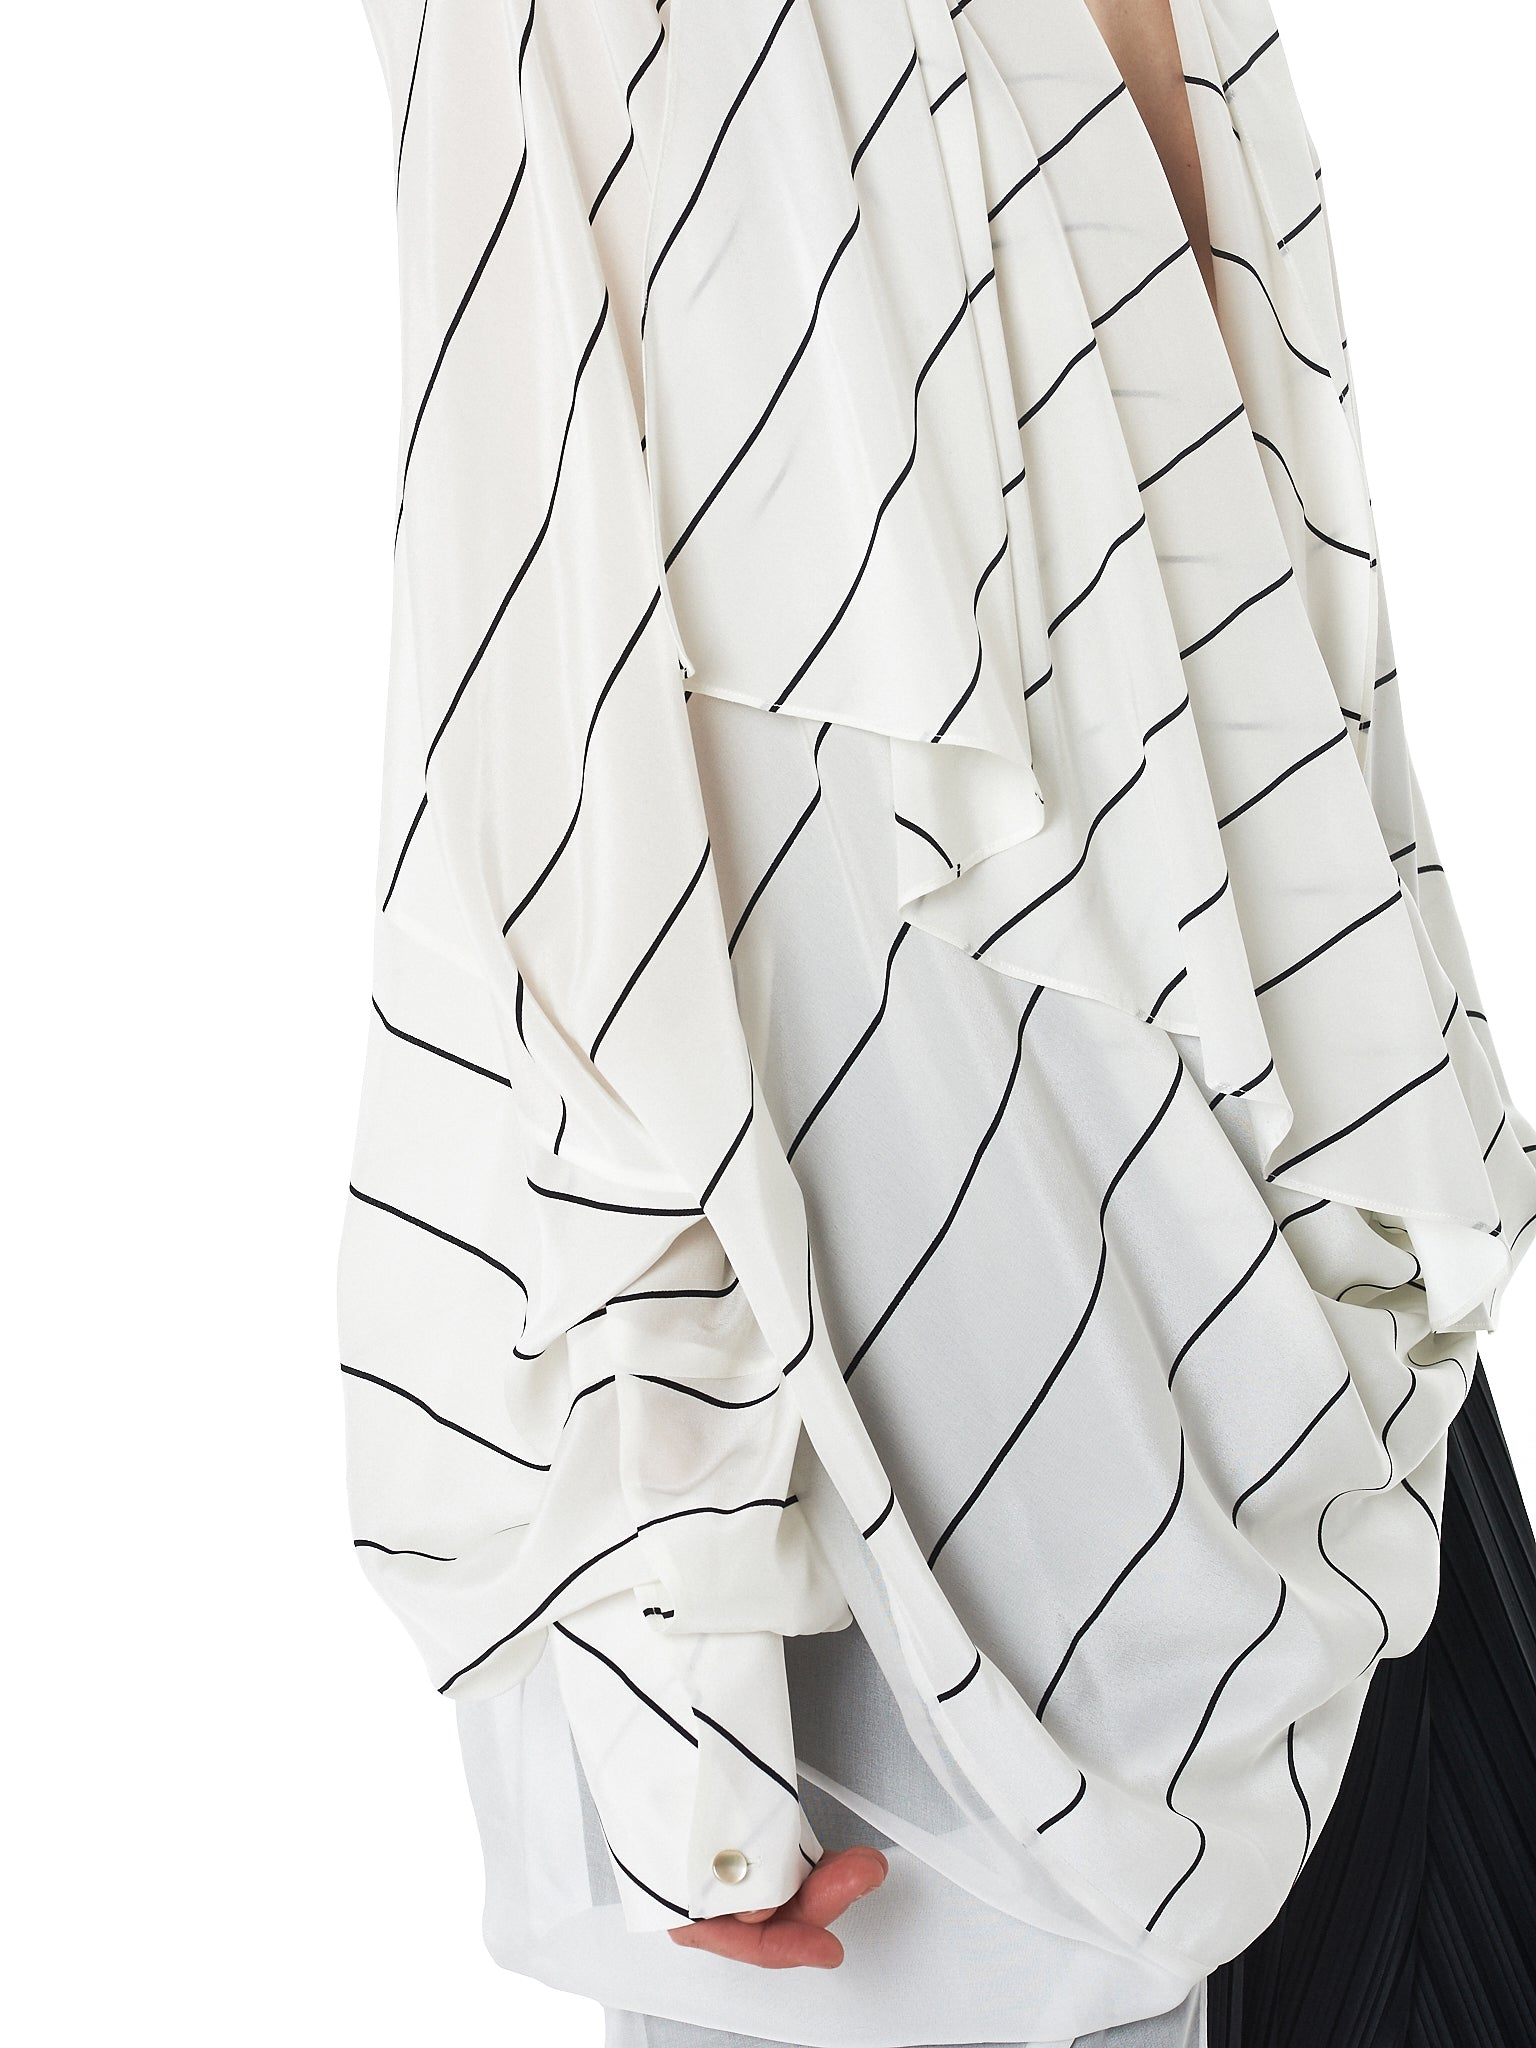 Striped Draped Dress (GNS-DR125-WHITE)